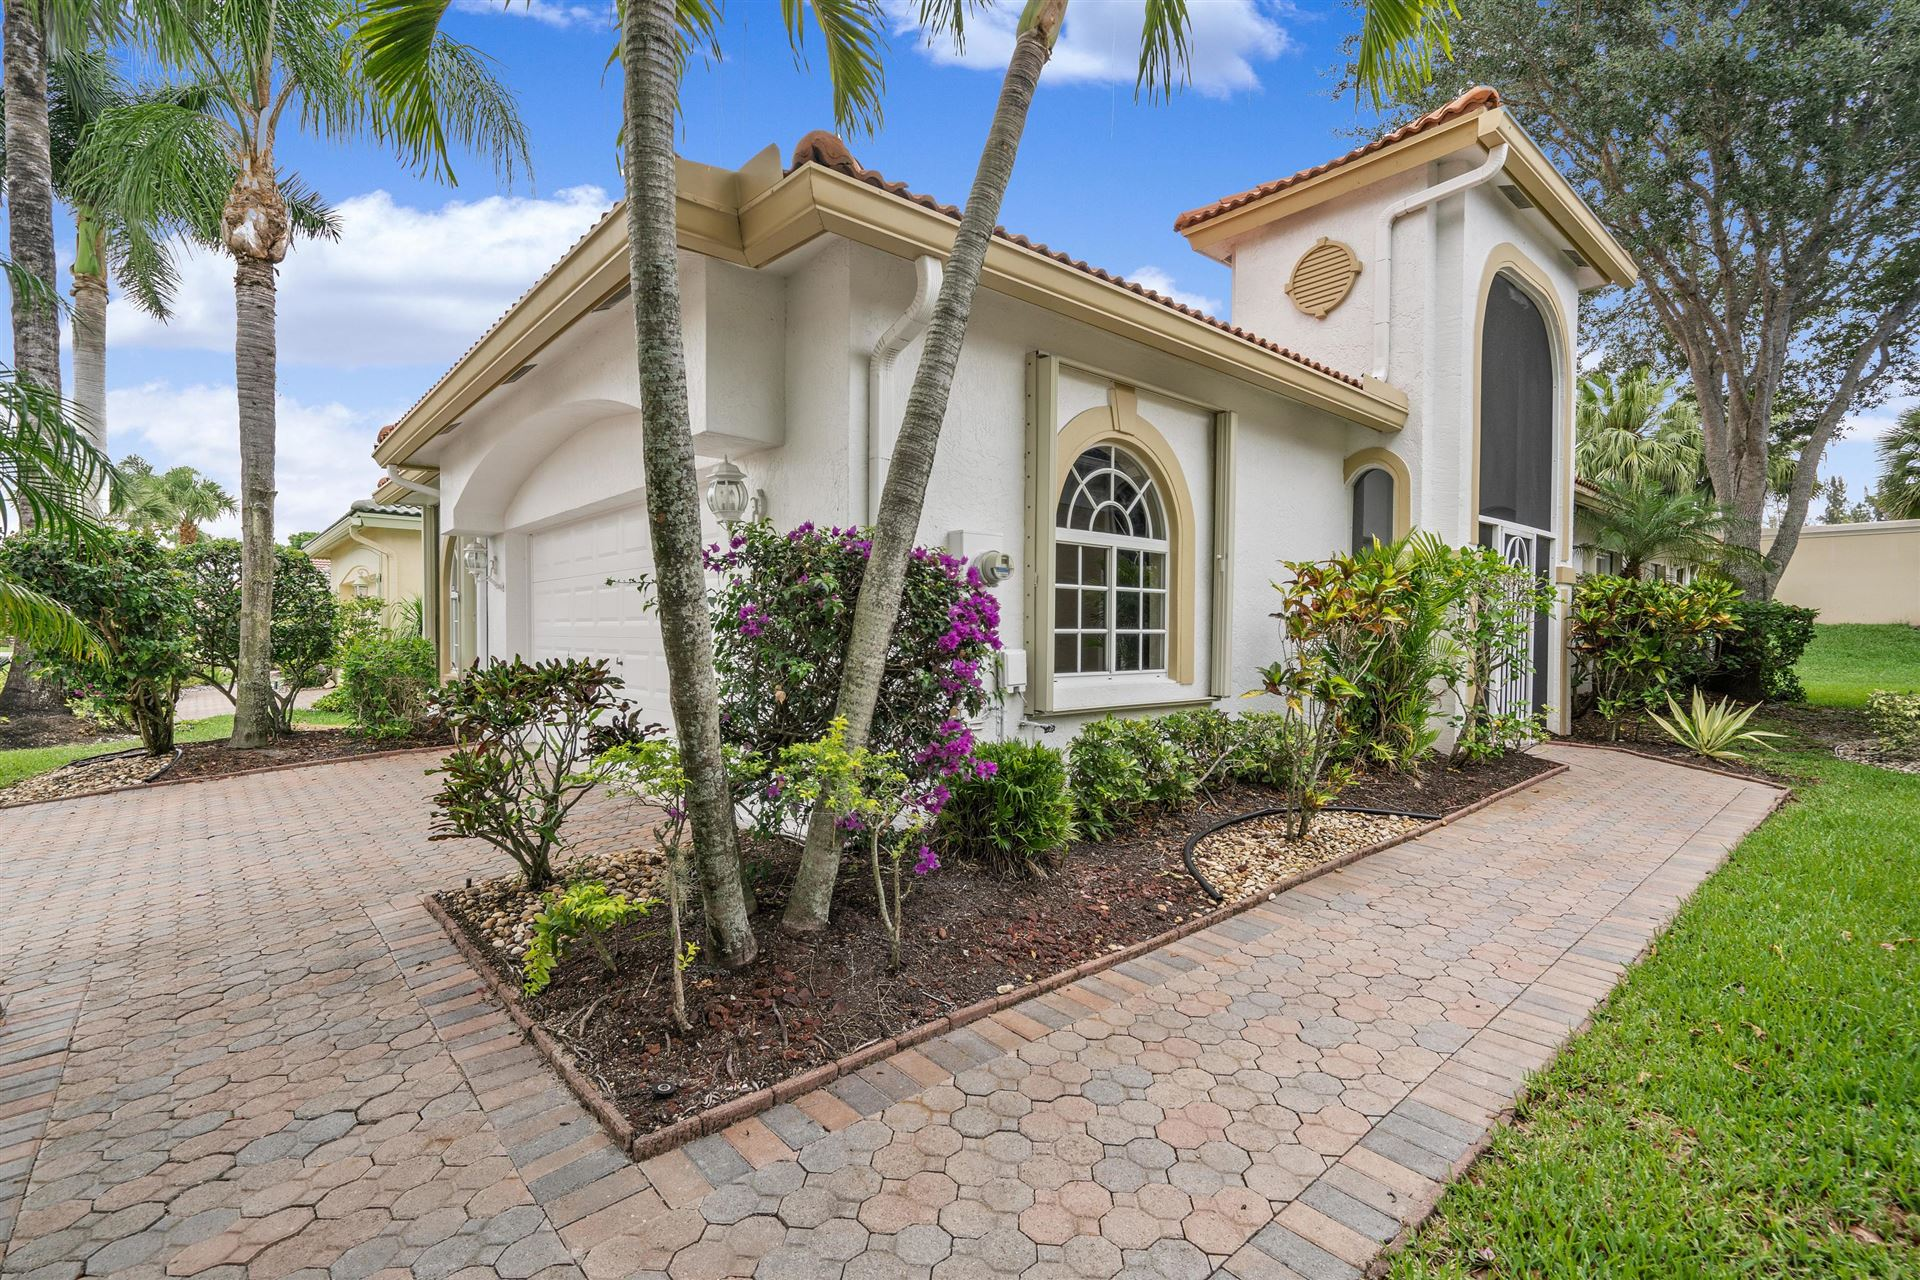 8018 Bellafiore Way, Boynton Beach, FL 33472 - MLS#: RX-10714397